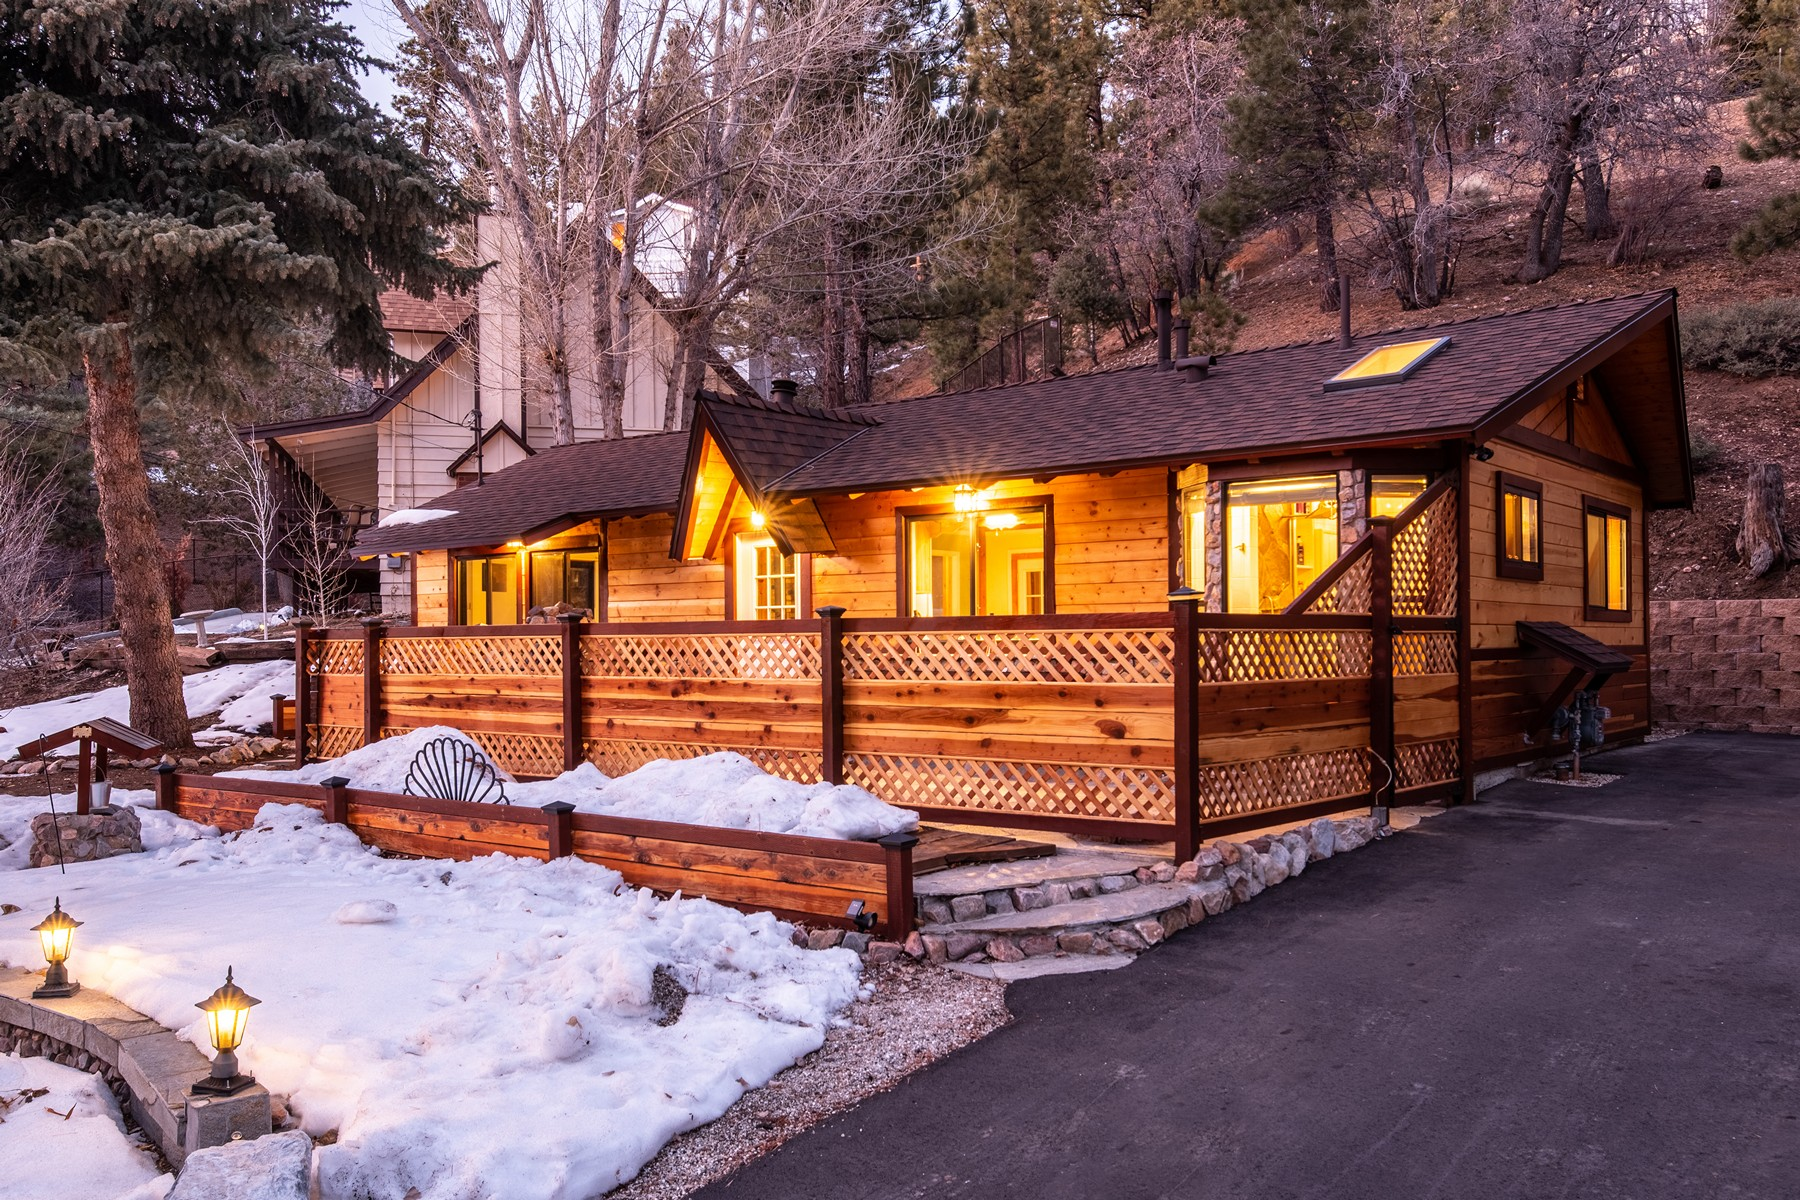 Single Family Homes for Sale at 43336 Sheephorn Road, Big Bear Lake, California 92315 43336 Sheephorn Road Big Bear Lake, California 92315 United States